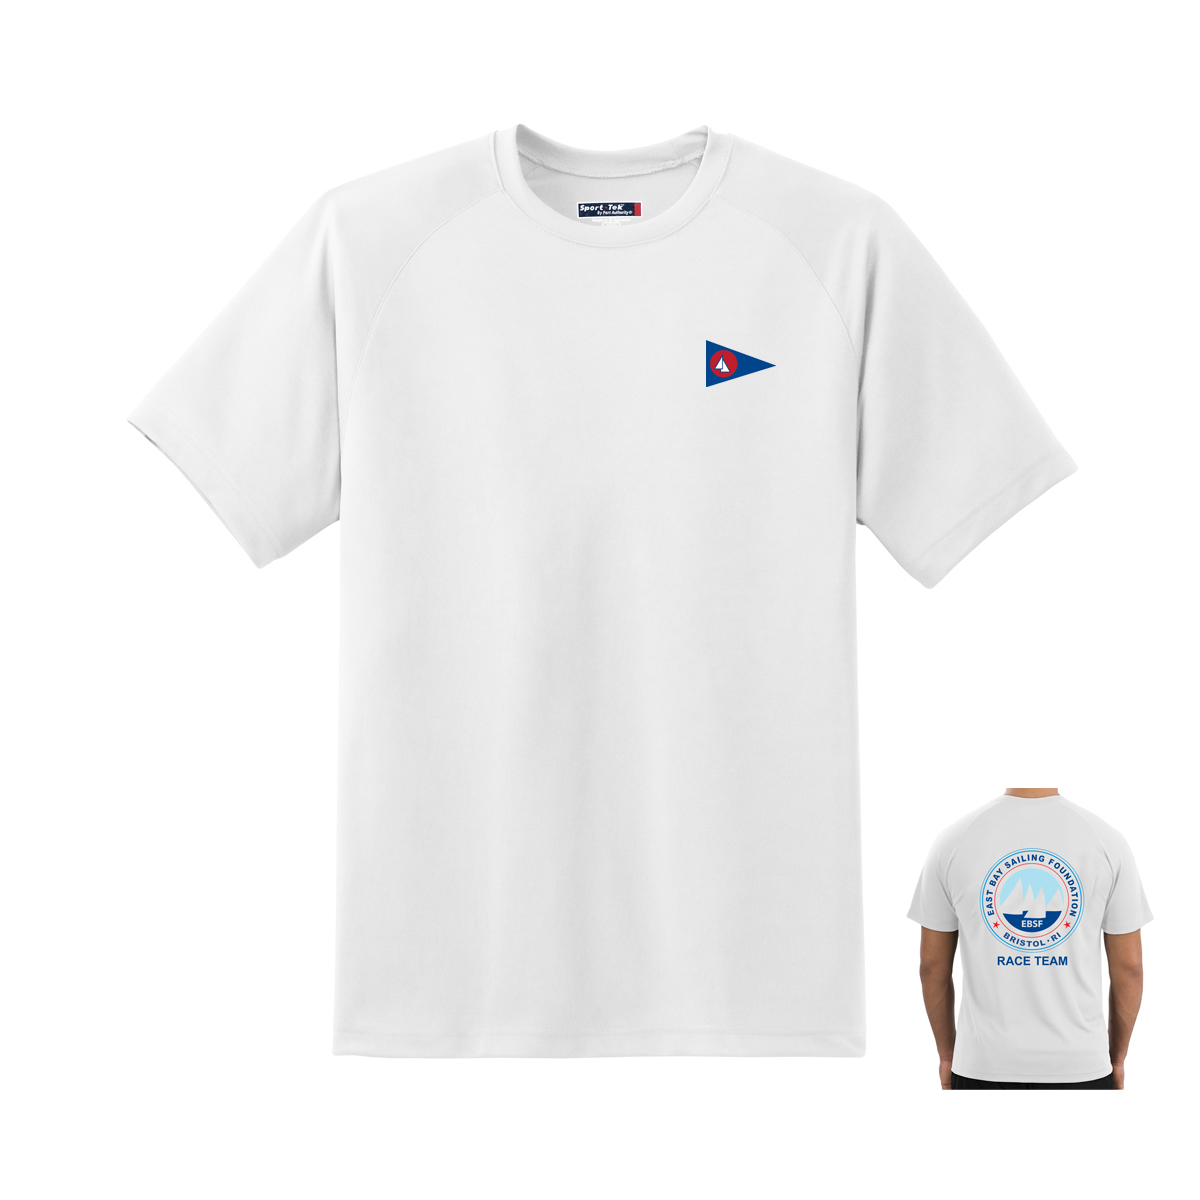 East Bay Sailing Foundation - Men's Race Team Short Sleeve Tech Tee